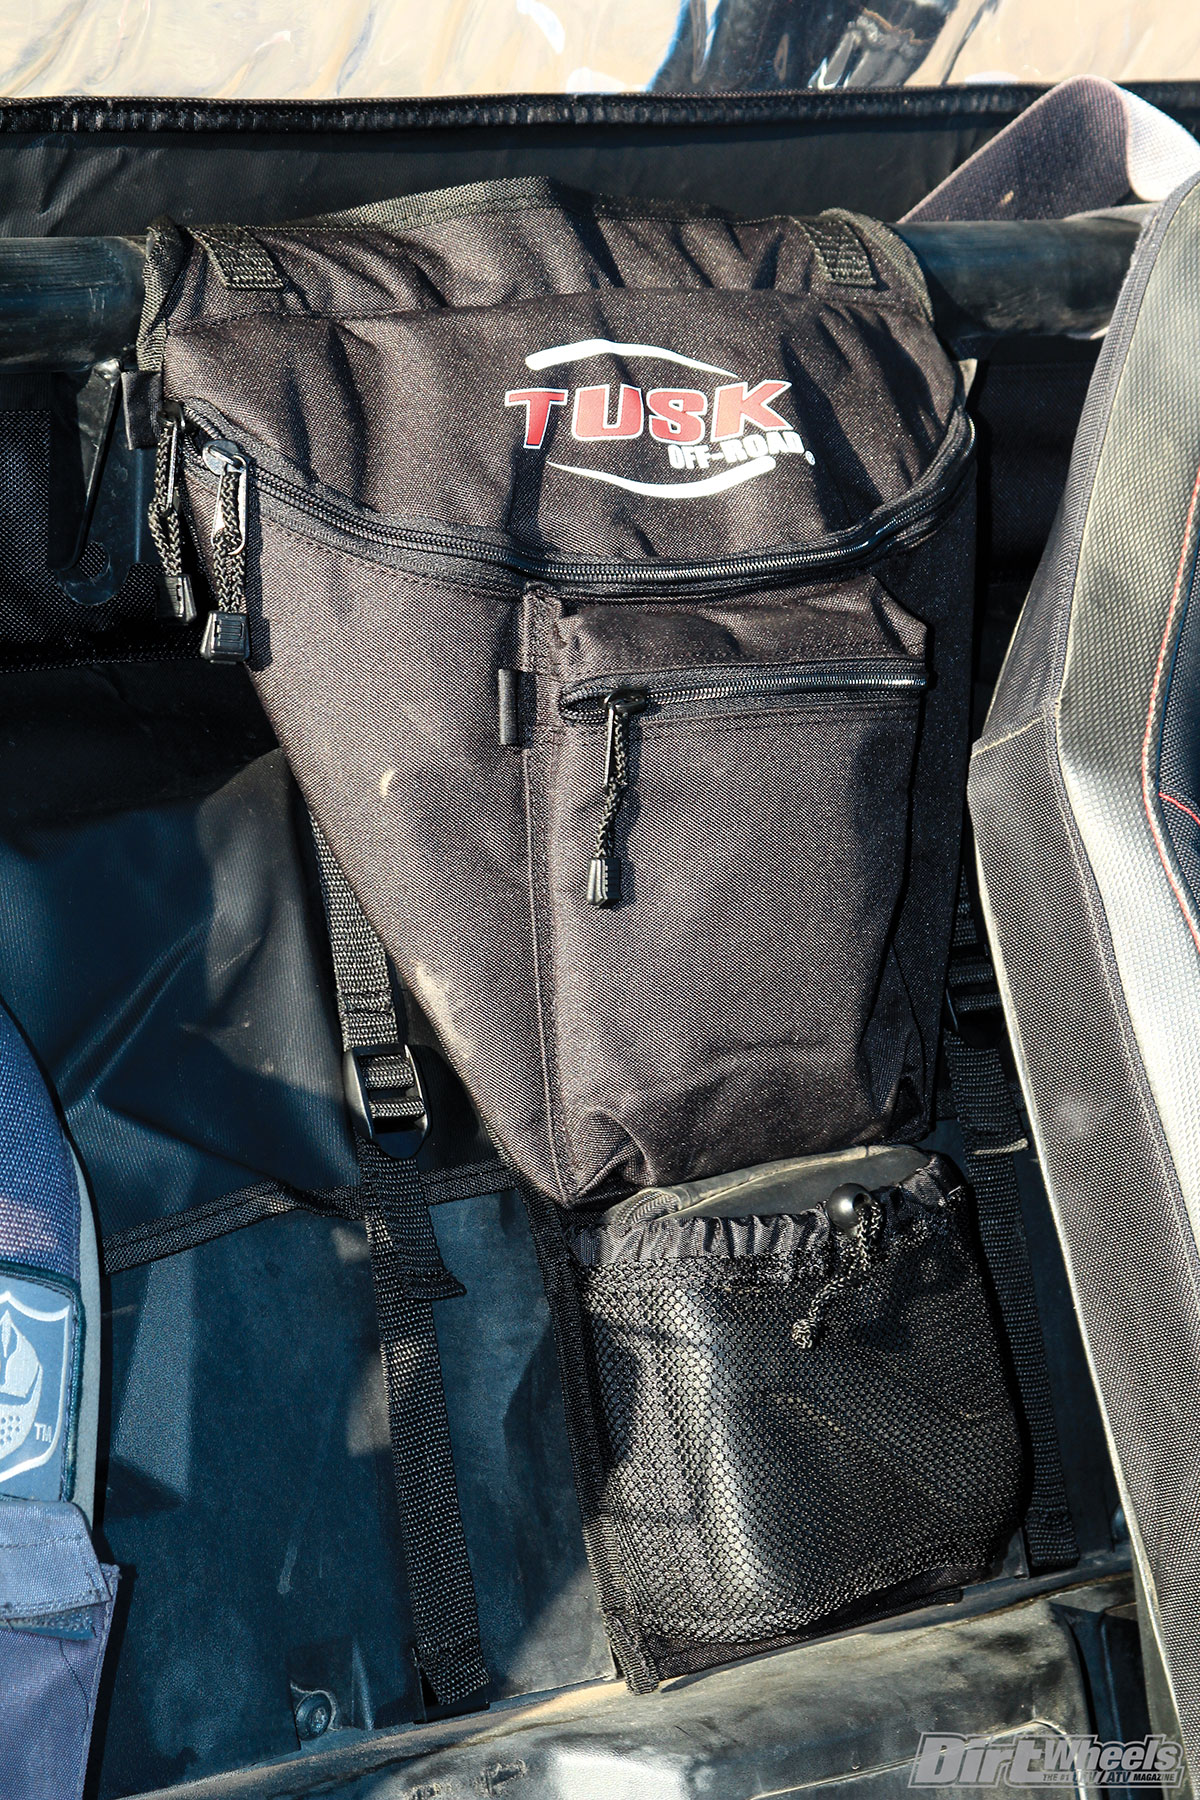 The Tusk cab bag holds enough tools to change the belt on your machine, hold a mini compressor and a plug kit, and more.